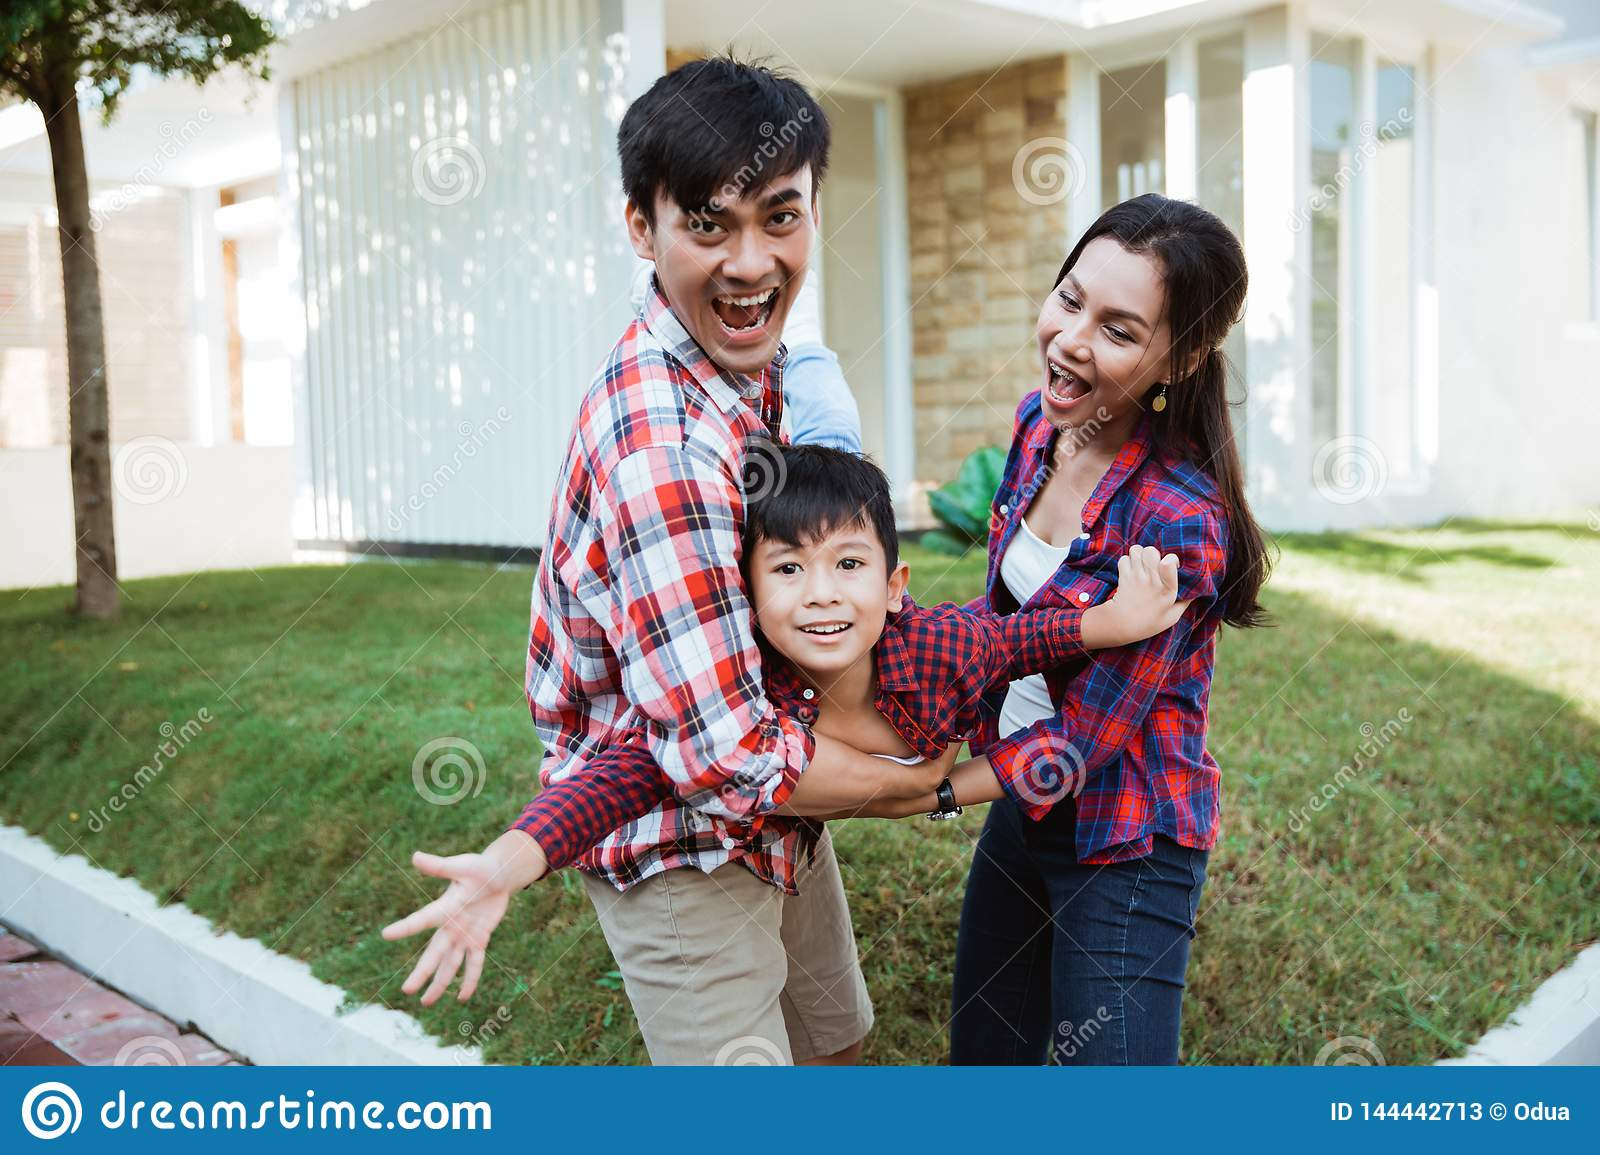 Family and kid enjoy playing together in front of their house